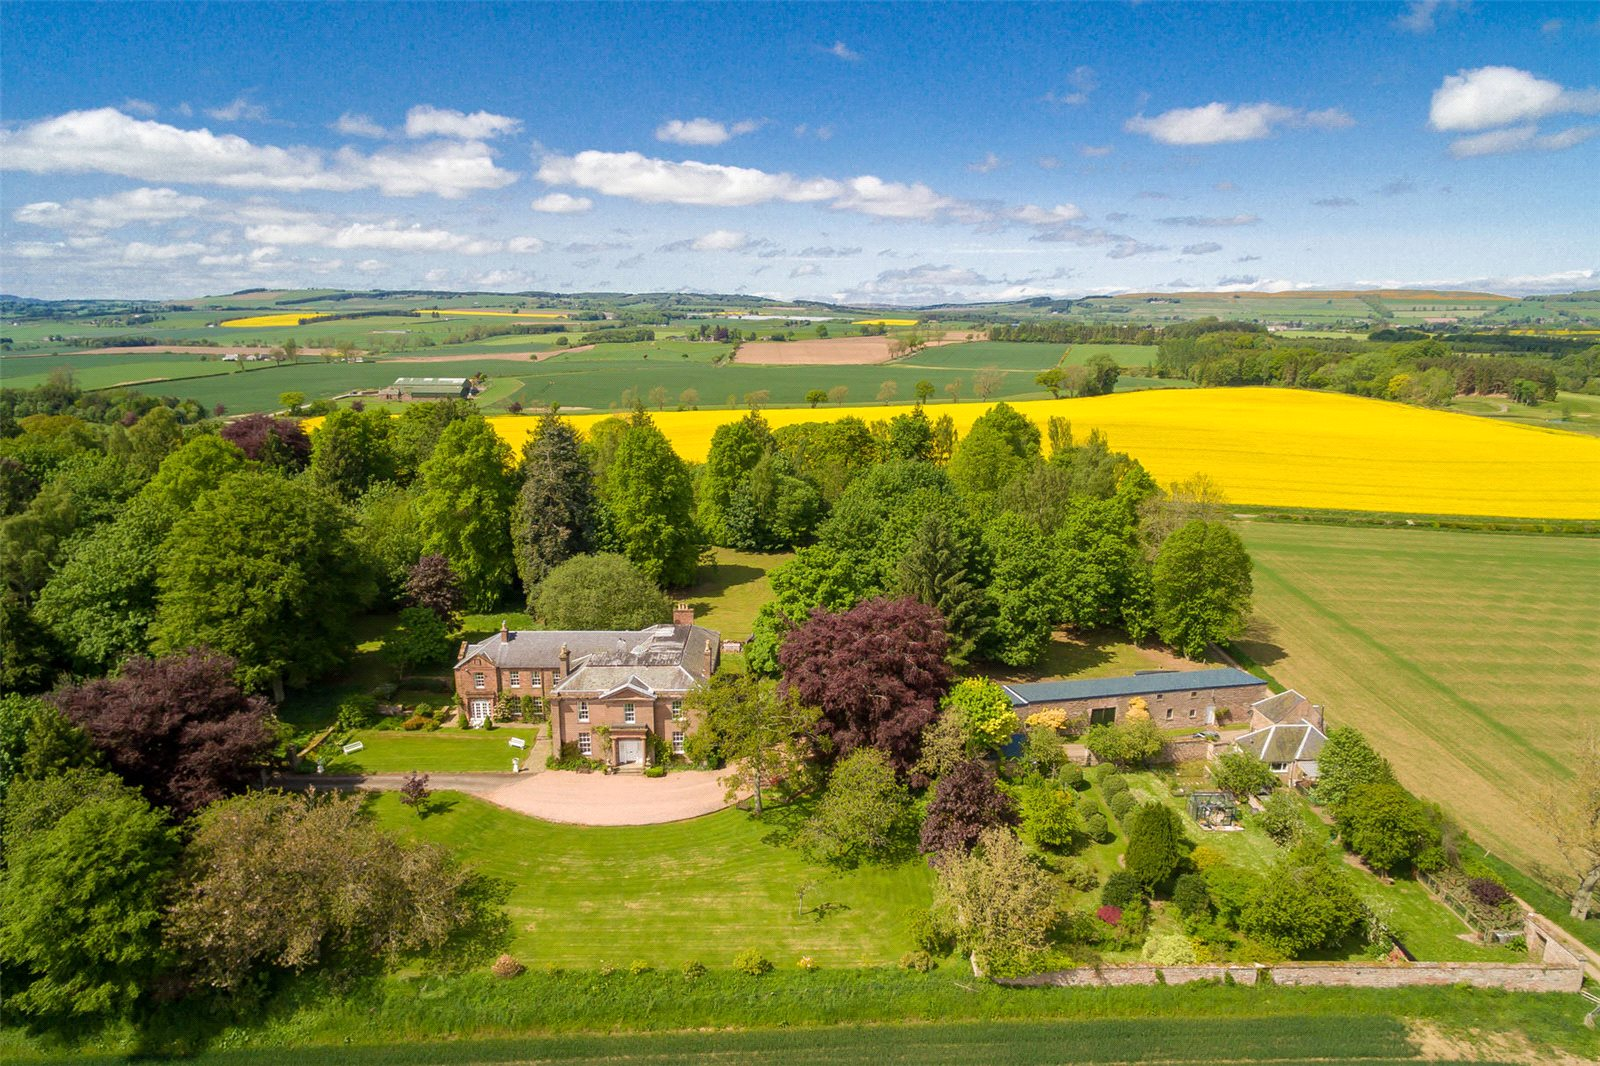 9 Bedrooms House for sale in Bardmony House, Alyth, Blairgowrie, Perthshire, PH11